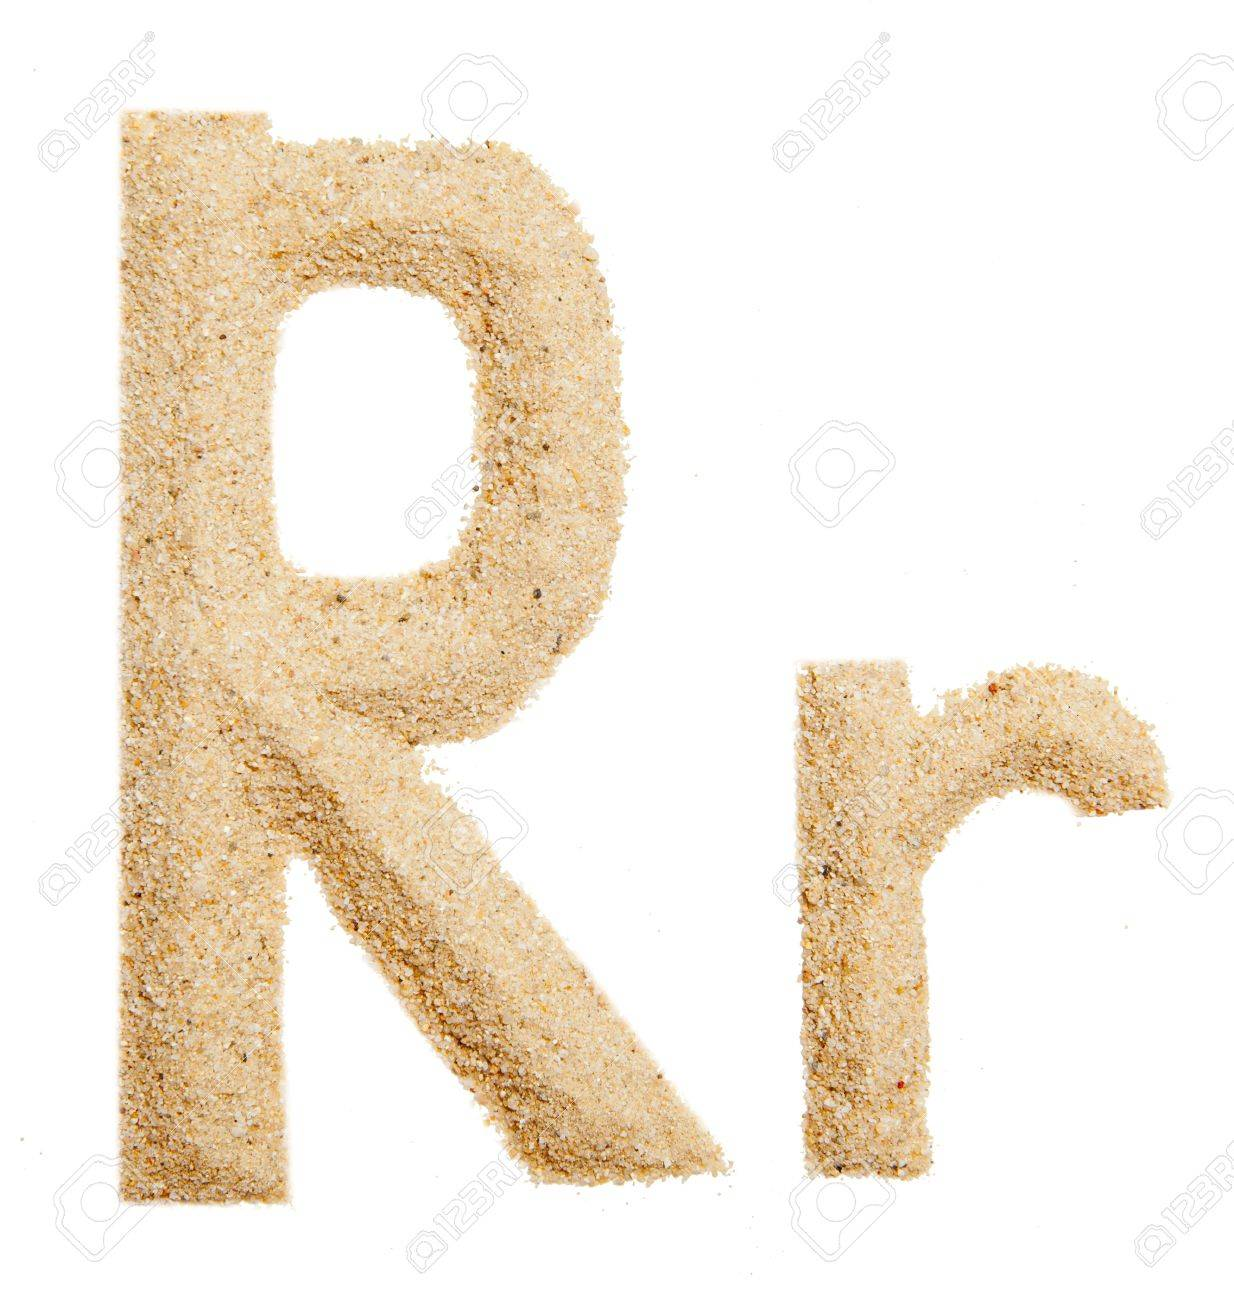 sand alphabet isolated Stock Photo - 11043996